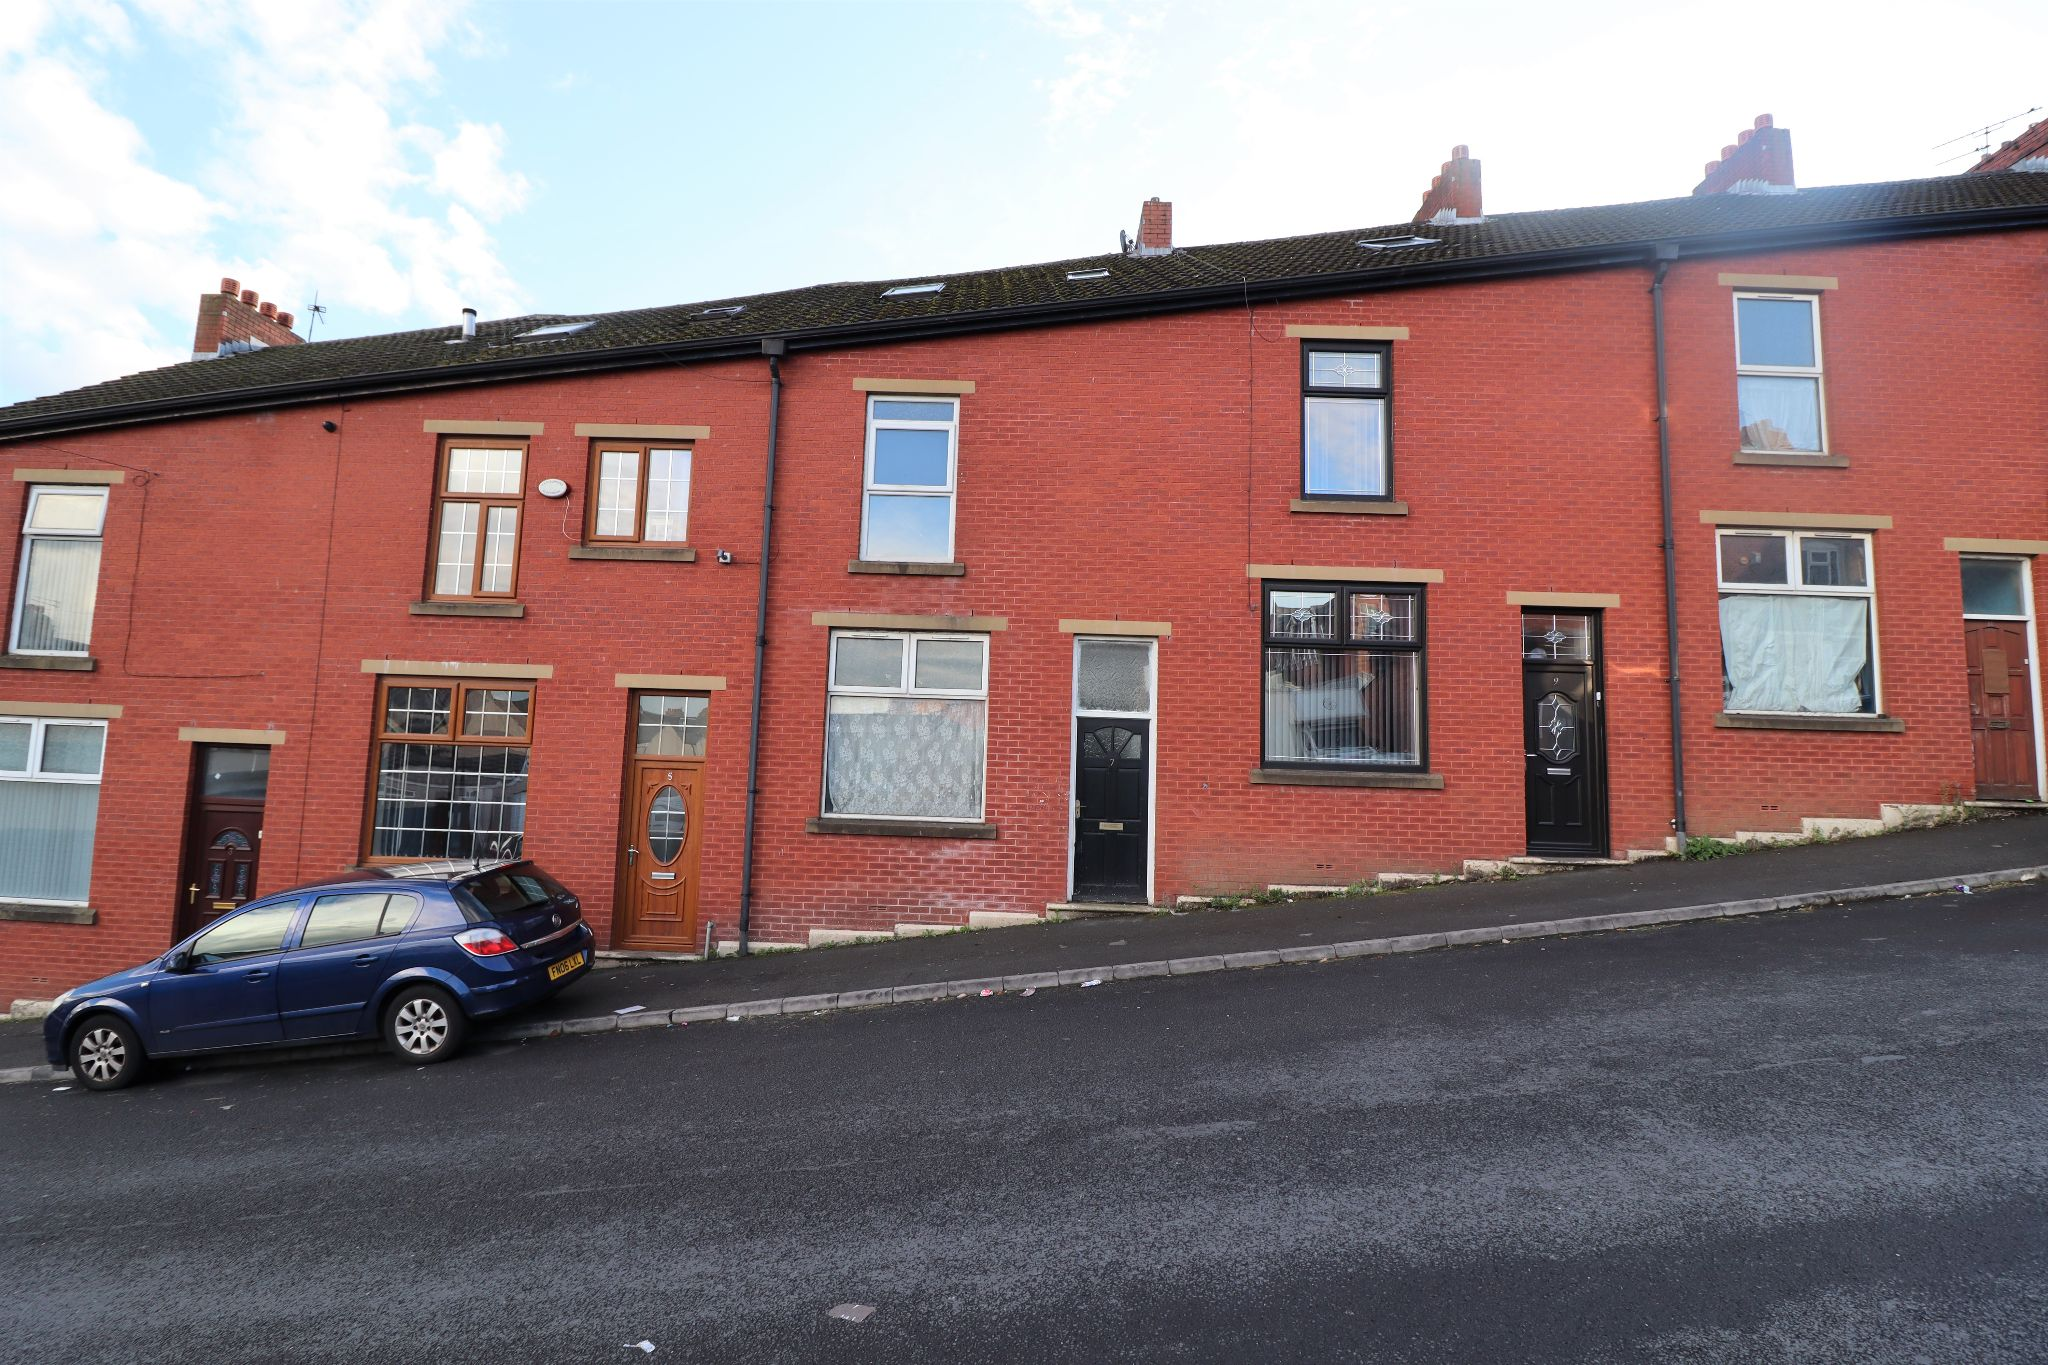 4 Bedroom Mid Terraced House For Sale - Photograph 1